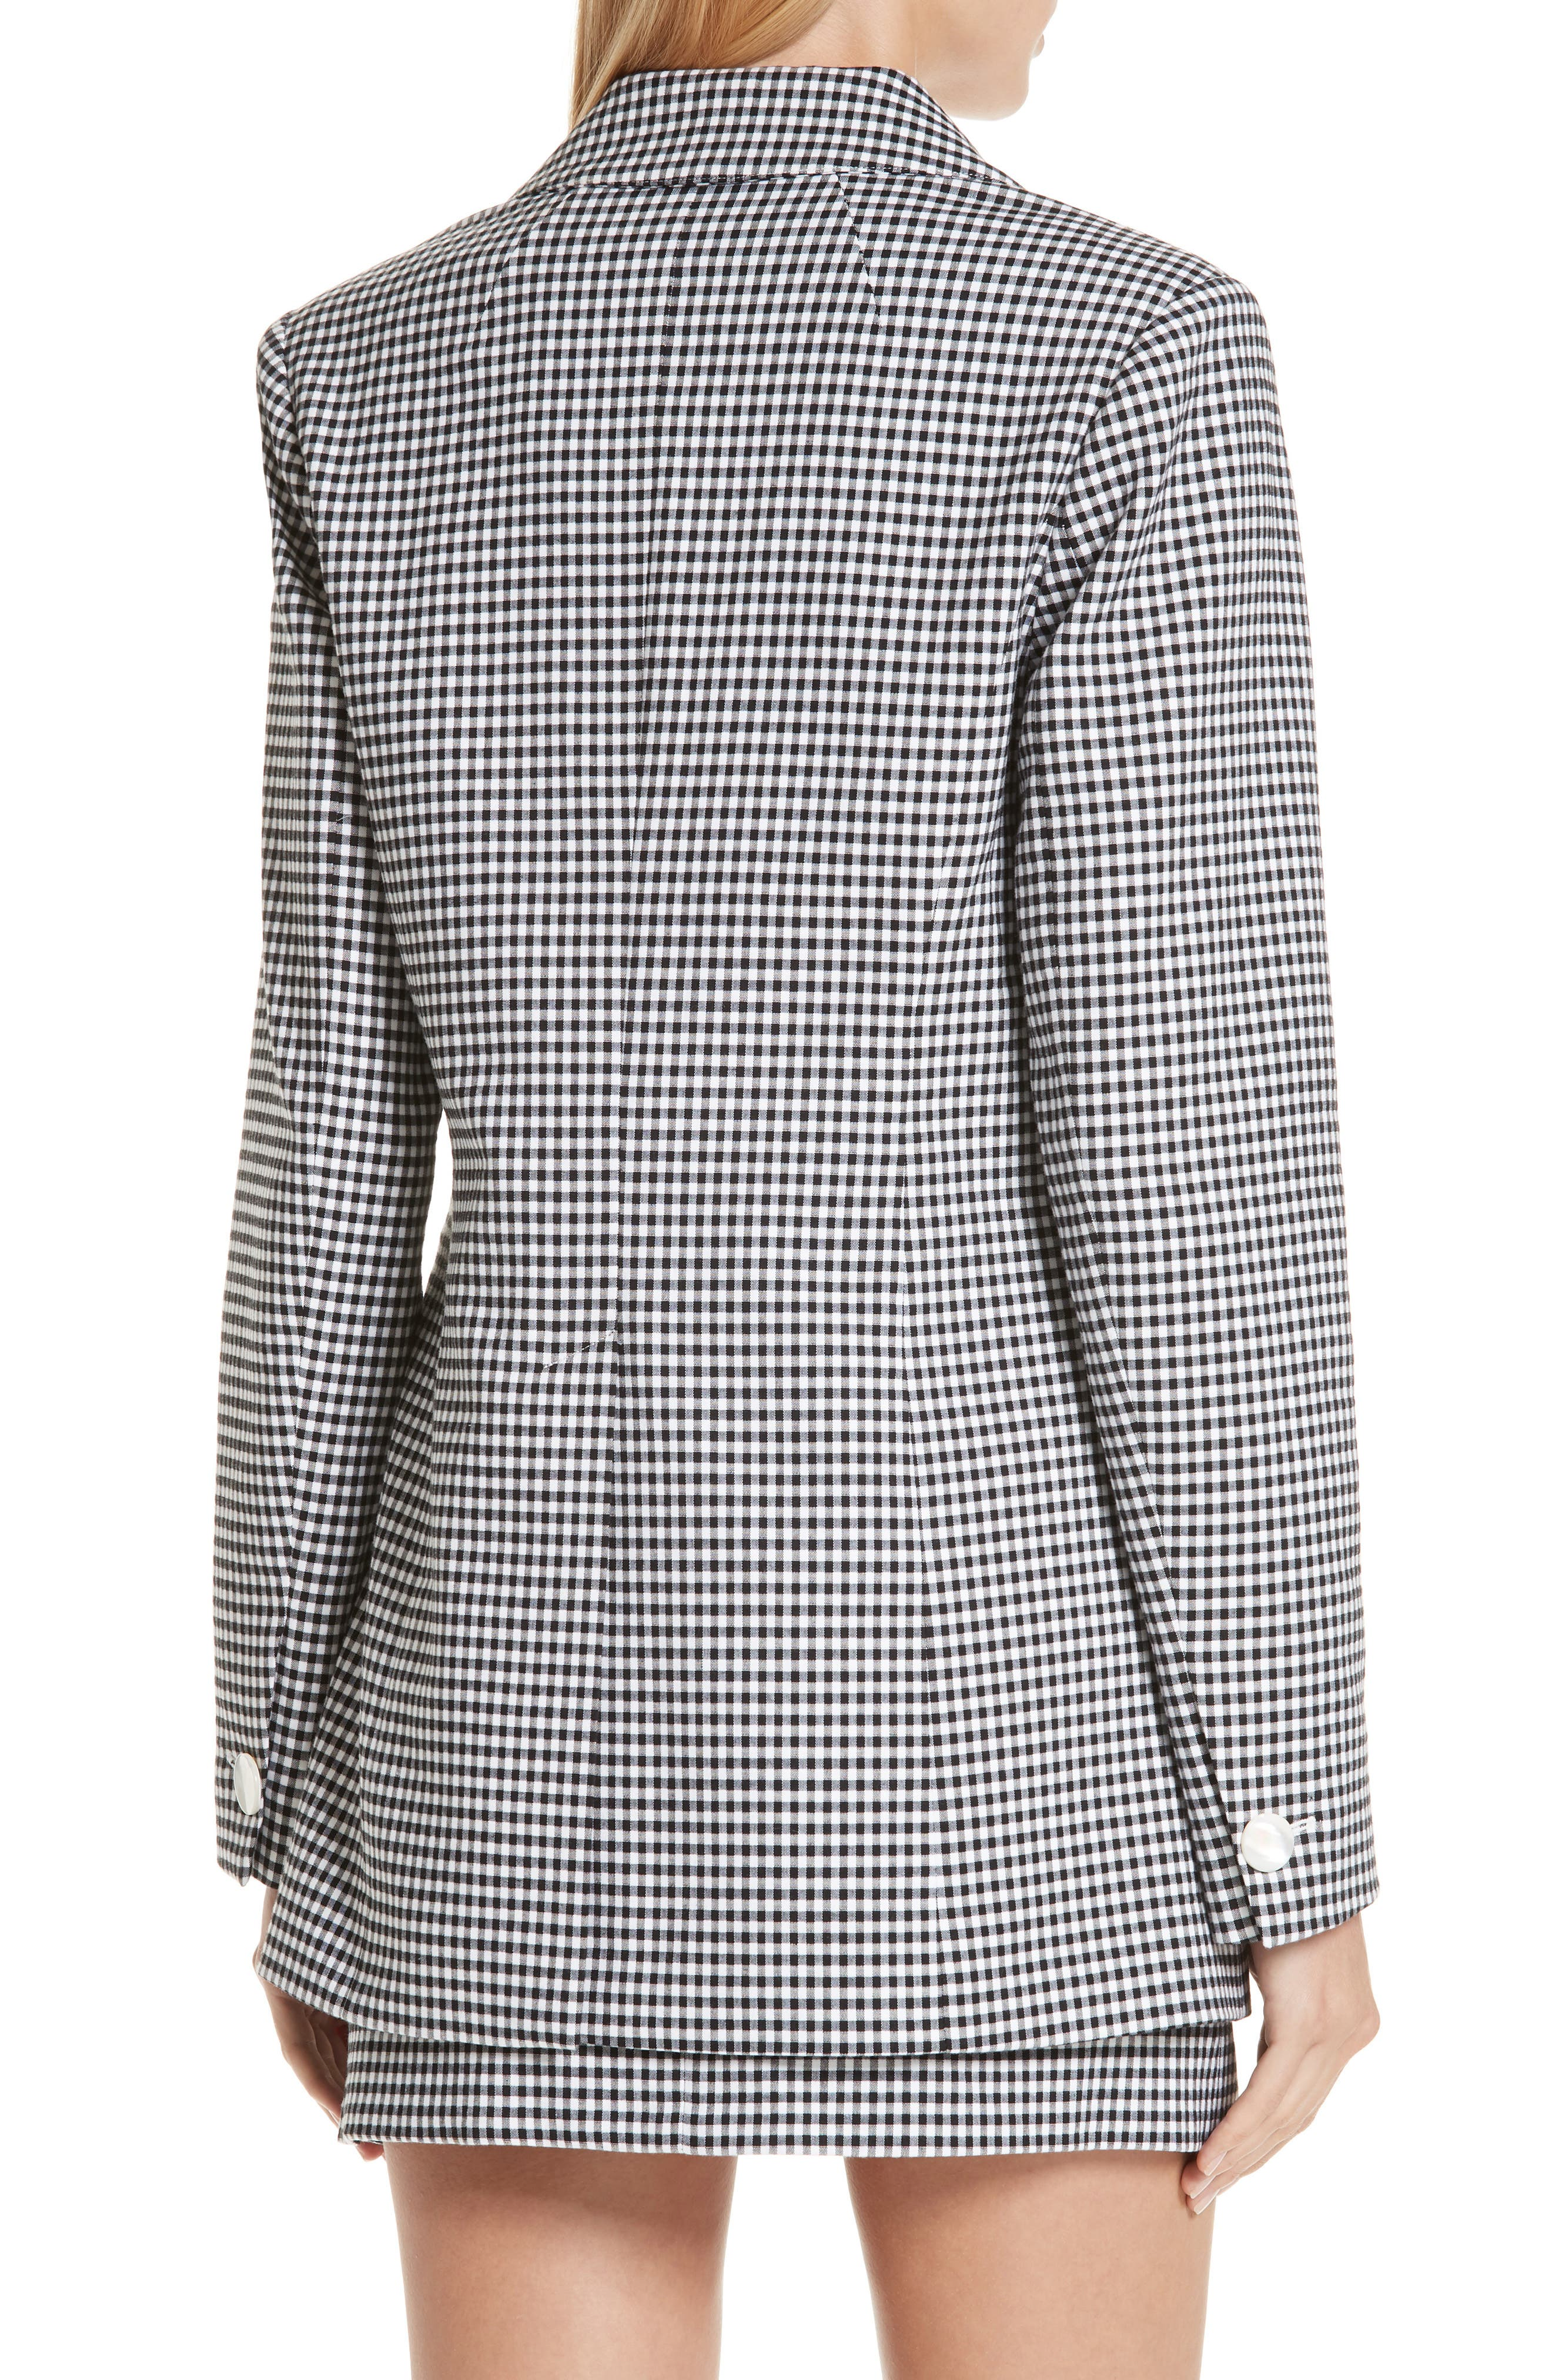 Lexy Mini Check Double Breasted Jacket,                             Alternate thumbnail 2, color,                             BLACK/ WHITE